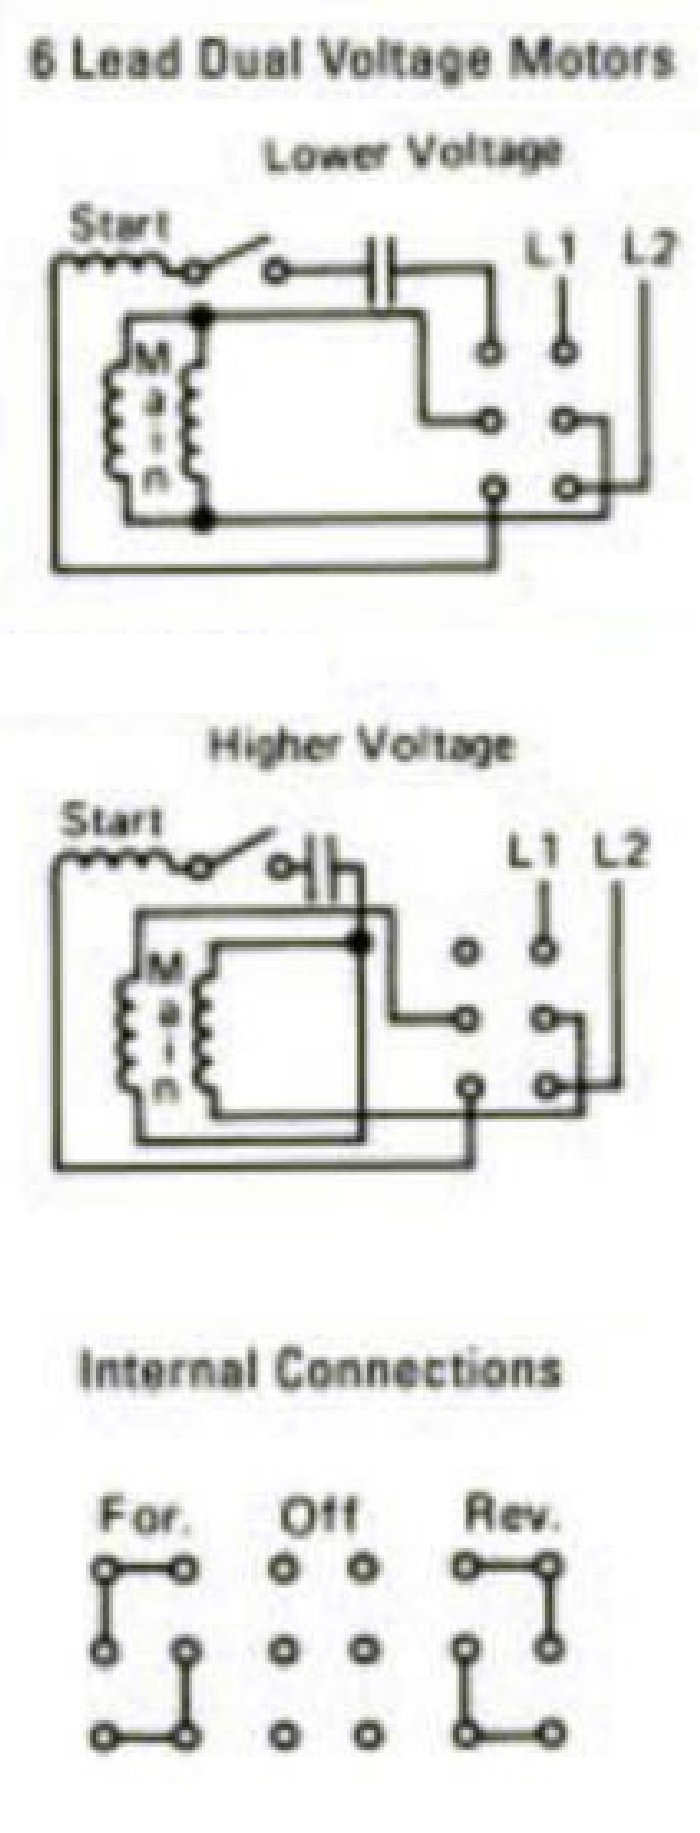 6 lead drum sw wiring boat lift switch wiring need help the hull truth boating and boat lift wiring diagram at bakdesigns.co